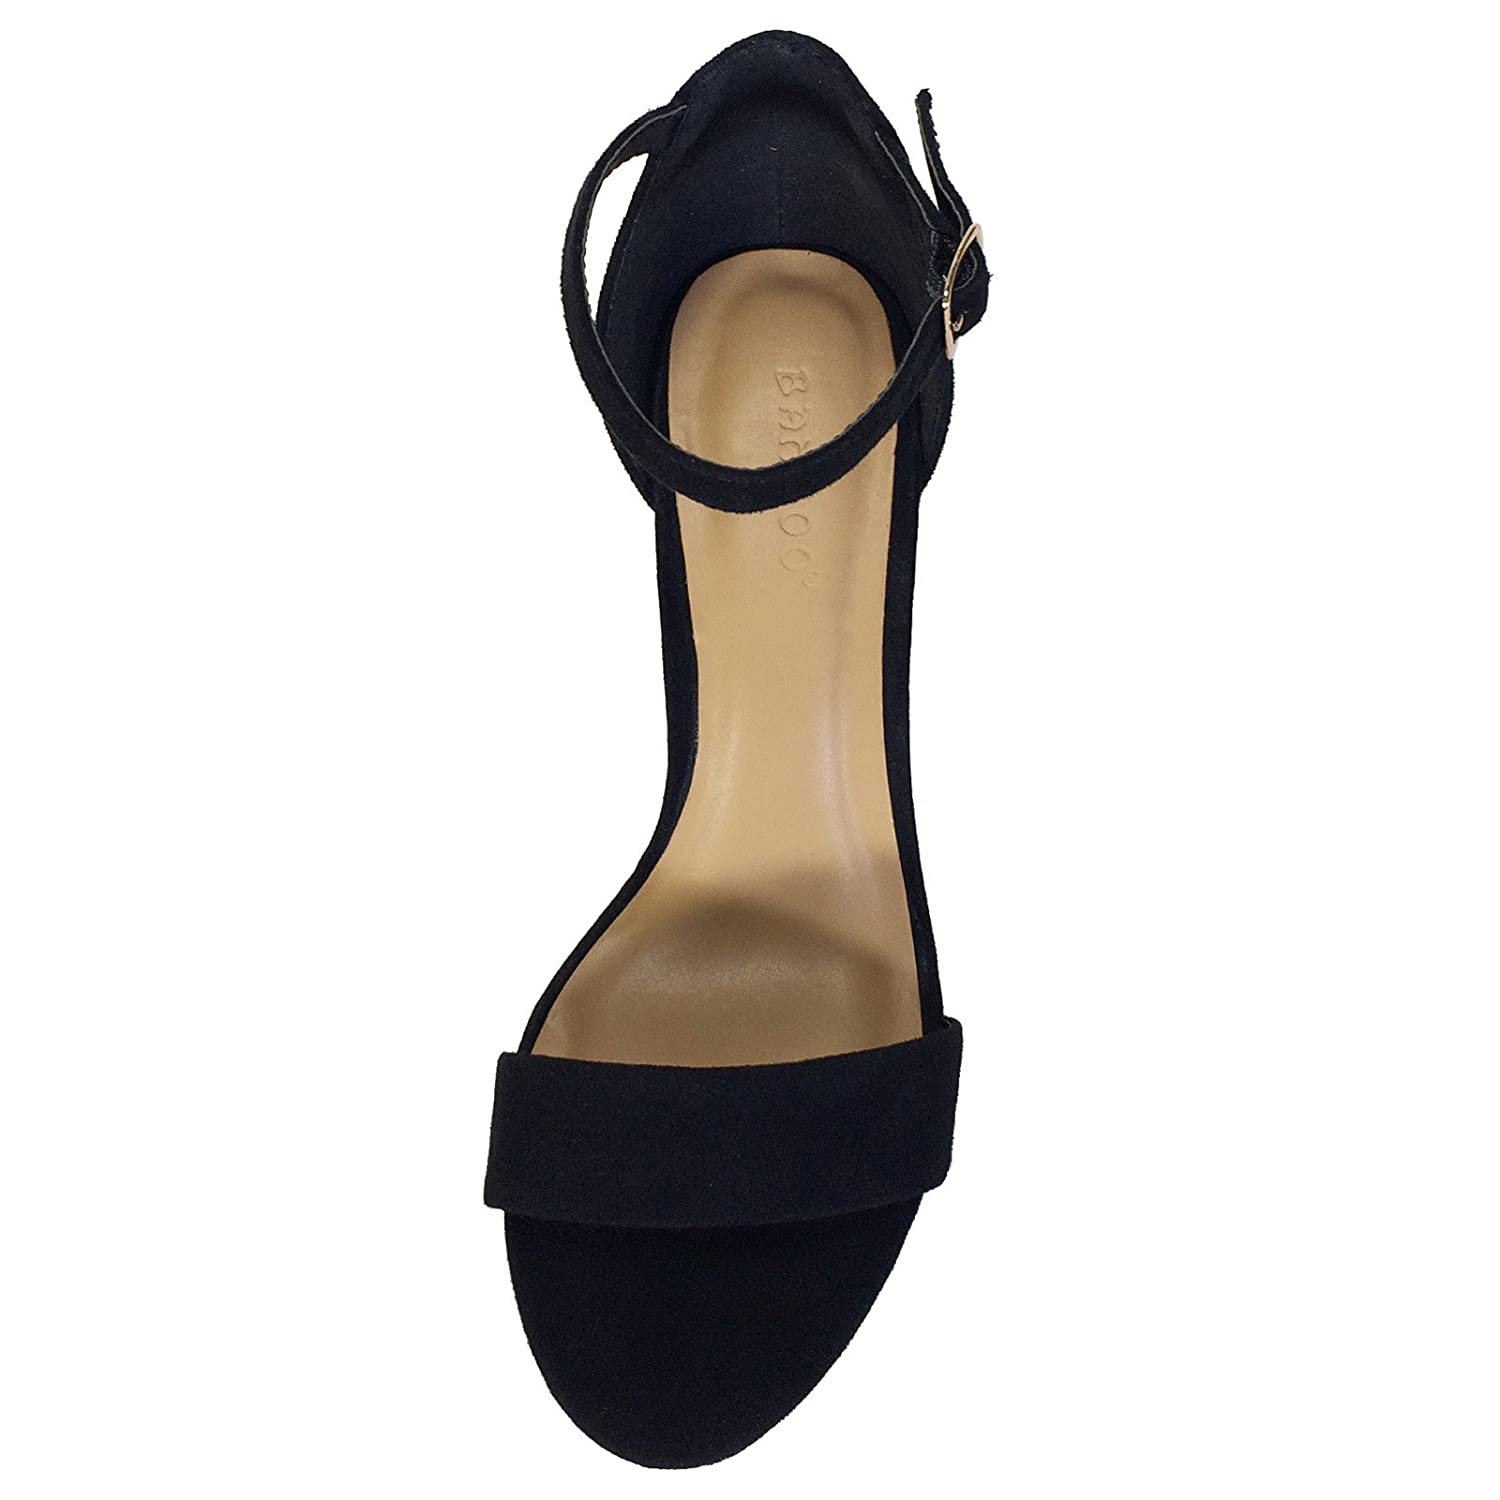 Bamboo Womens Gold Electroplated Chunky Heel Sandal Heels Wanita Suede 274 With Ankle Strap Black Faux 65 D M Us Heeled Sandals